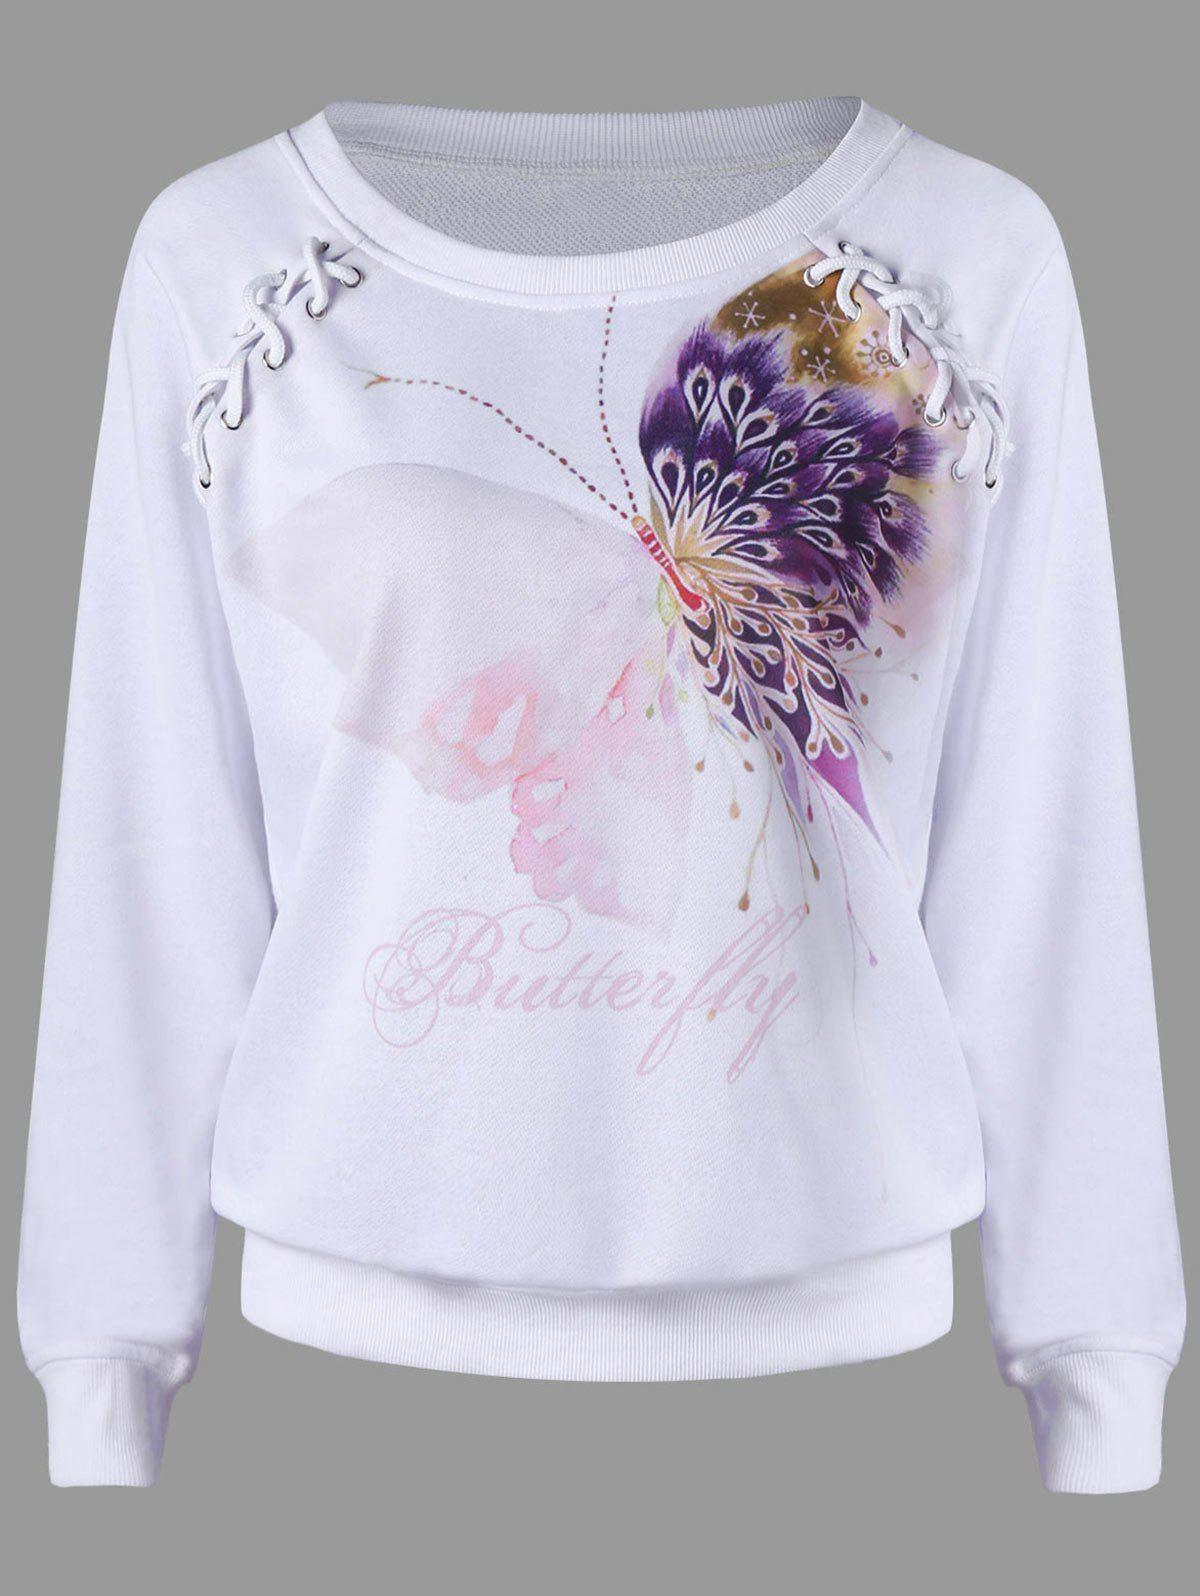 Lace Up Butterfly Print SweatshirtWOMEN<br><br>Size: XL; Color: WHITE; Material: Polyester; Shirt Length: Regular; Sleeve Length: Full; Style: Casual; Pattern Style: Insect; Season: Fall,Spring; Weight: 0.3800kg; Package Contents: 1 x Sweatshirt;